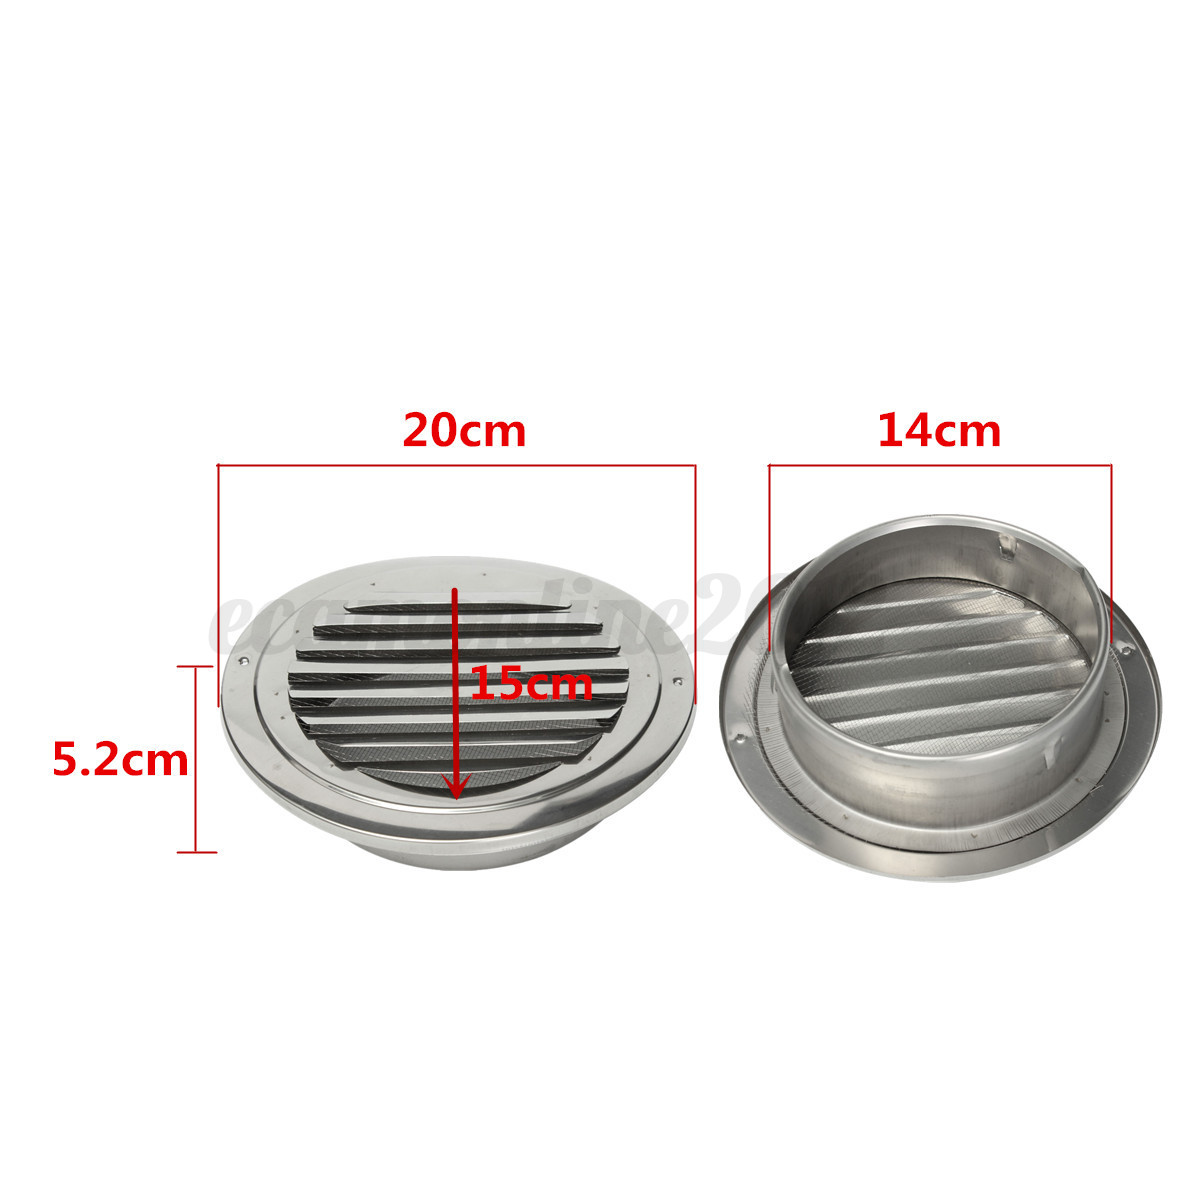 wall mount circular stainless steel ventilation air vent grille cover 100 150mm ebay. Black Bedroom Furniture Sets. Home Design Ideas